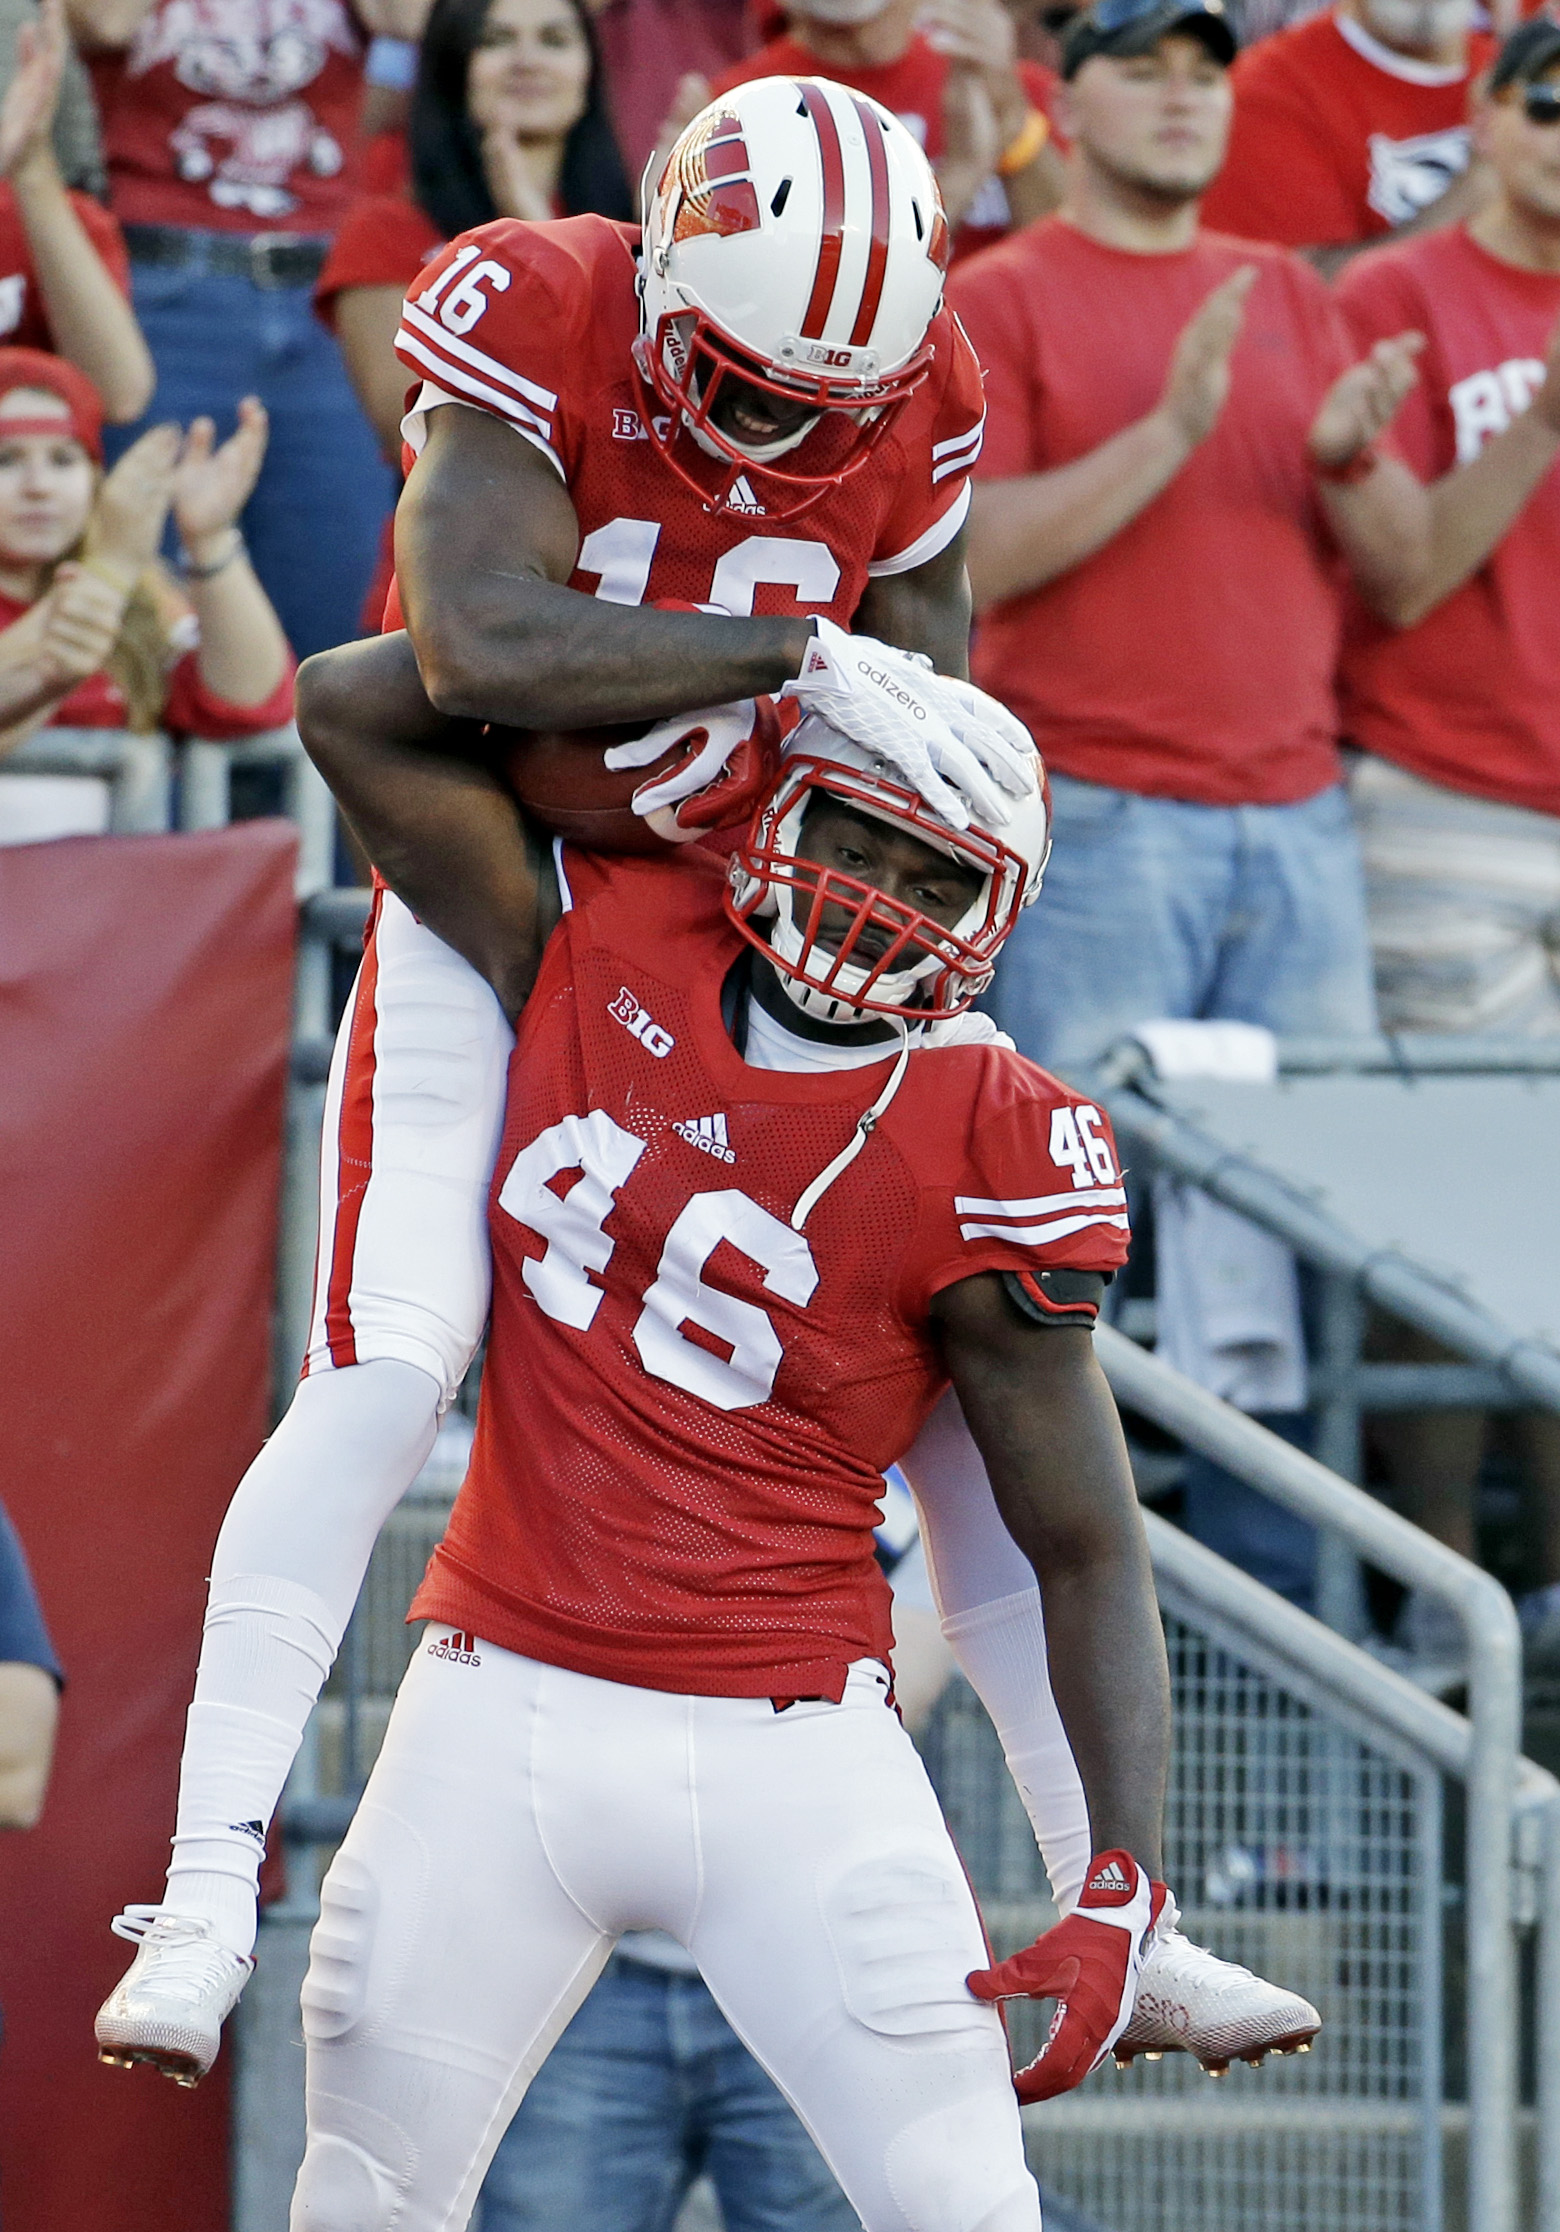 Wisconsin's Austin Traylor (46) is congratulated by teammate Reggie Love (16) after a touchdown catch during the second half of an NCAA college football game against Troy, Saturday, Sept. 19, 2015, in Madison, Wis. (AP Photo/Morry Gash)